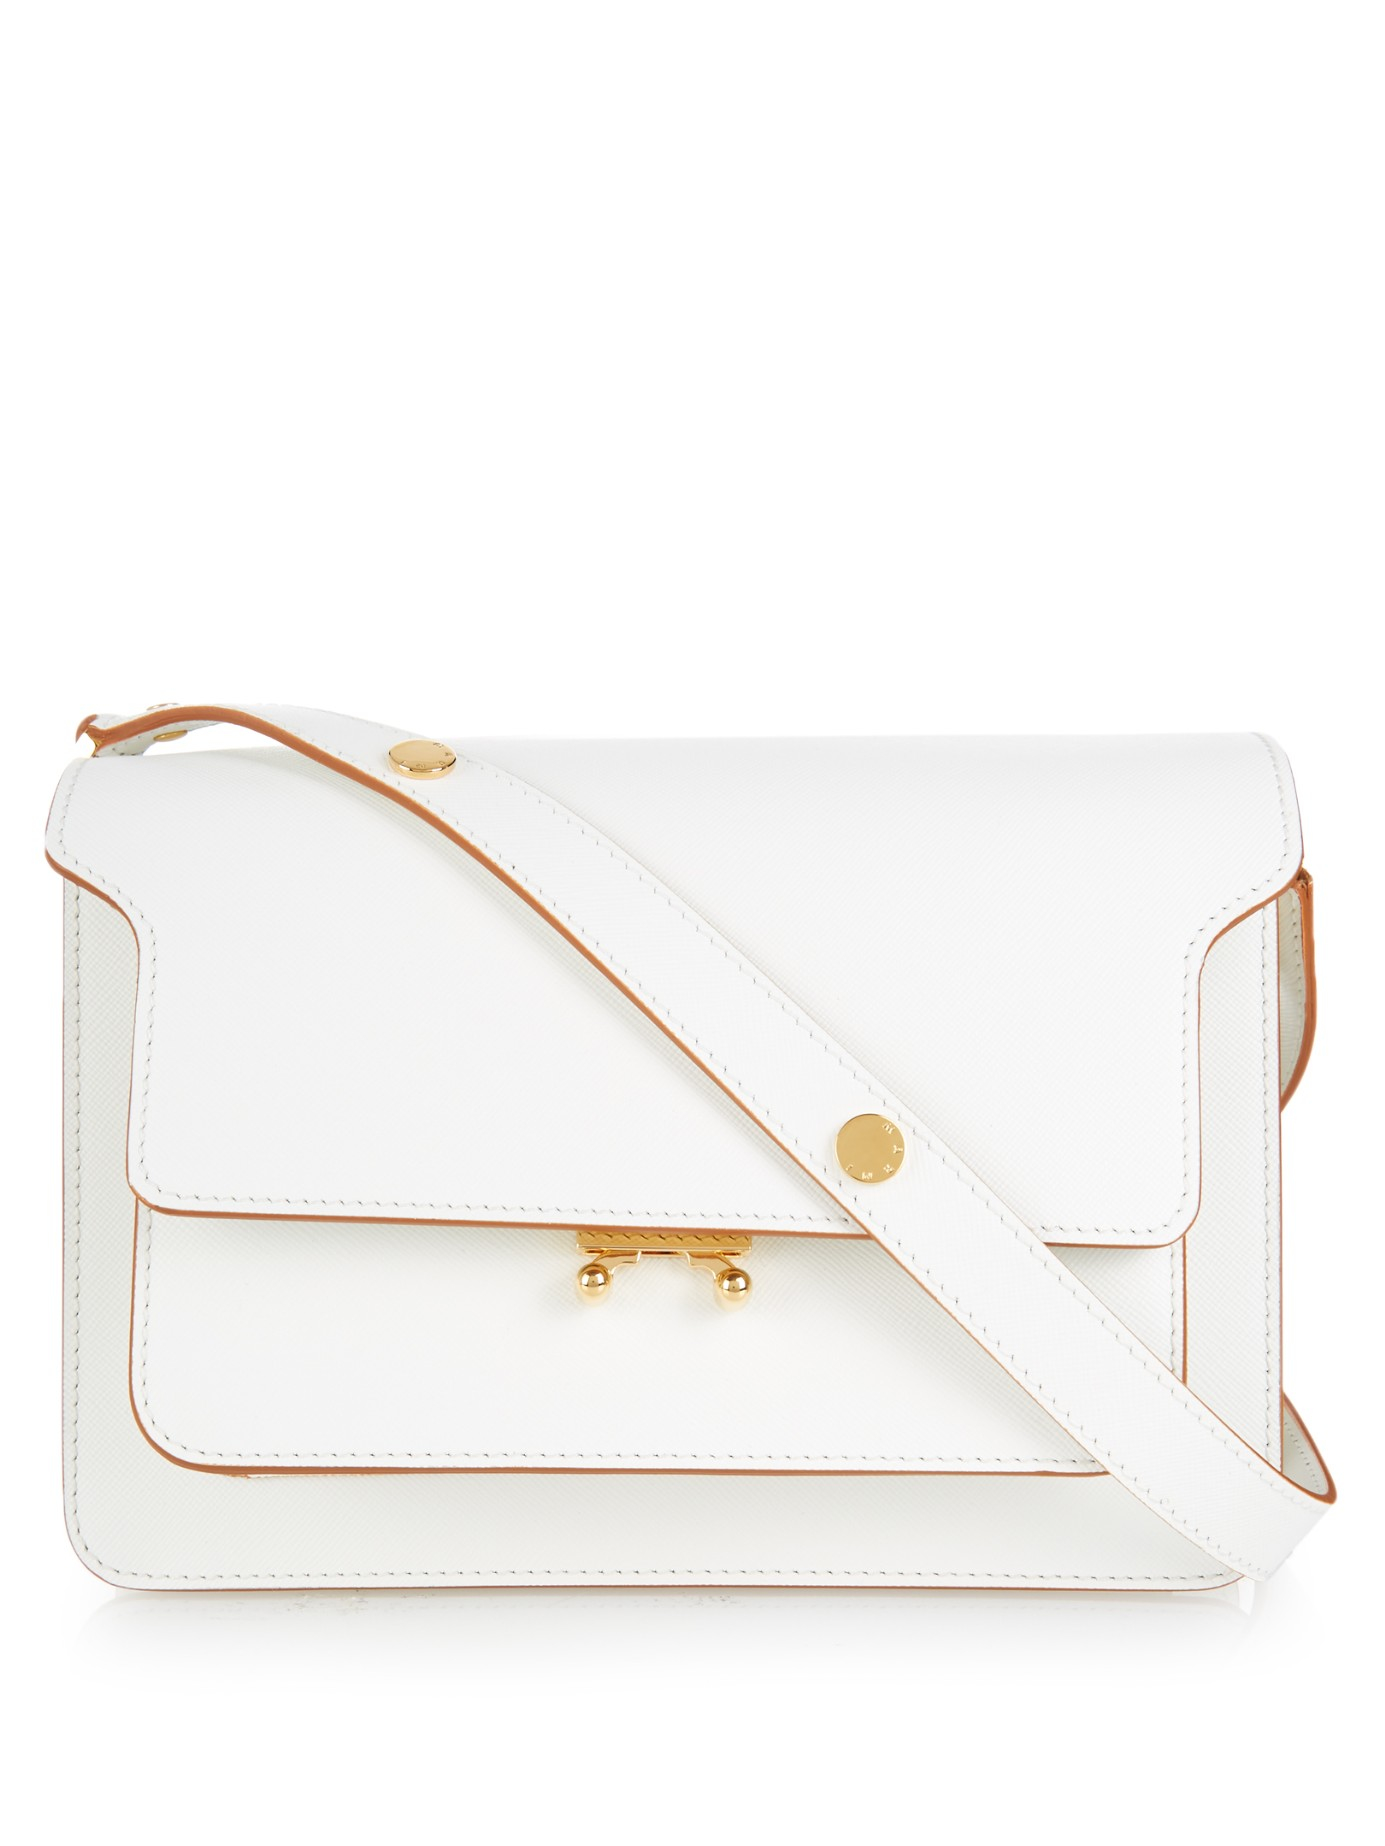 Trunk Micro Leather Shoulder Bag - White Marni CupYsBtN2